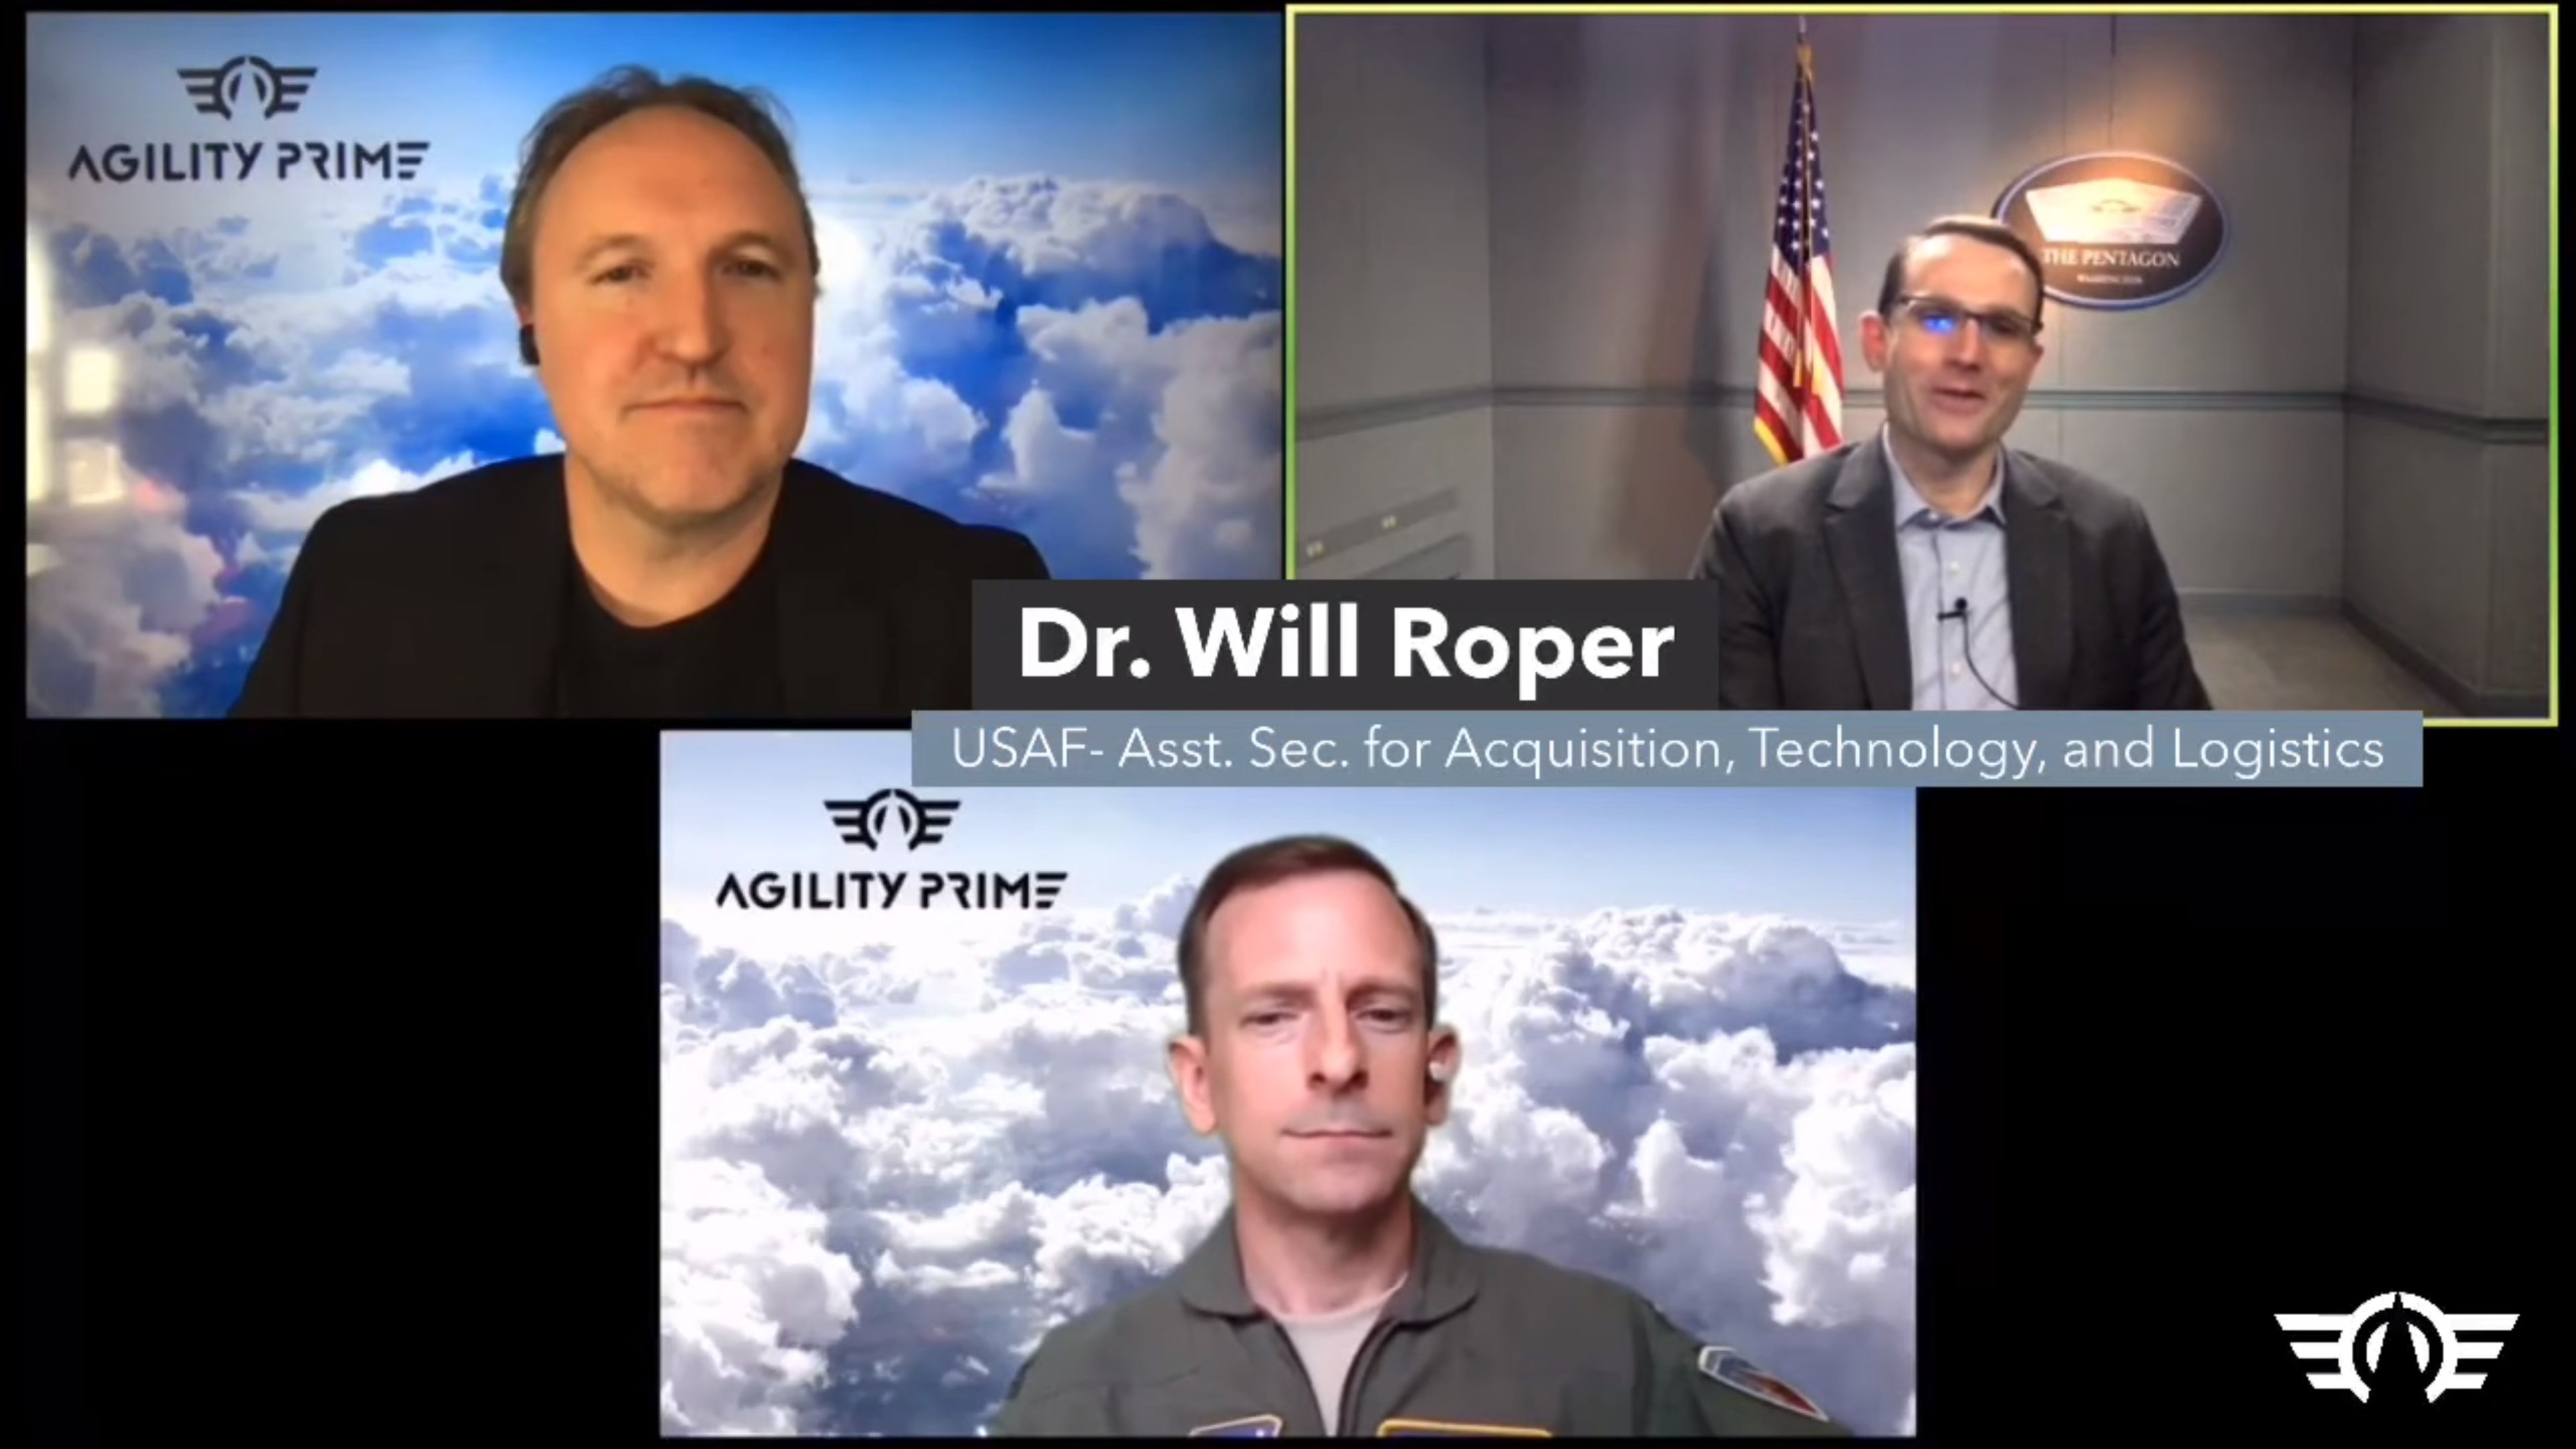 Agility Prime with Brandon Klein, Dr. Will Roper, Col. Nate Diller on April 27, 2020.